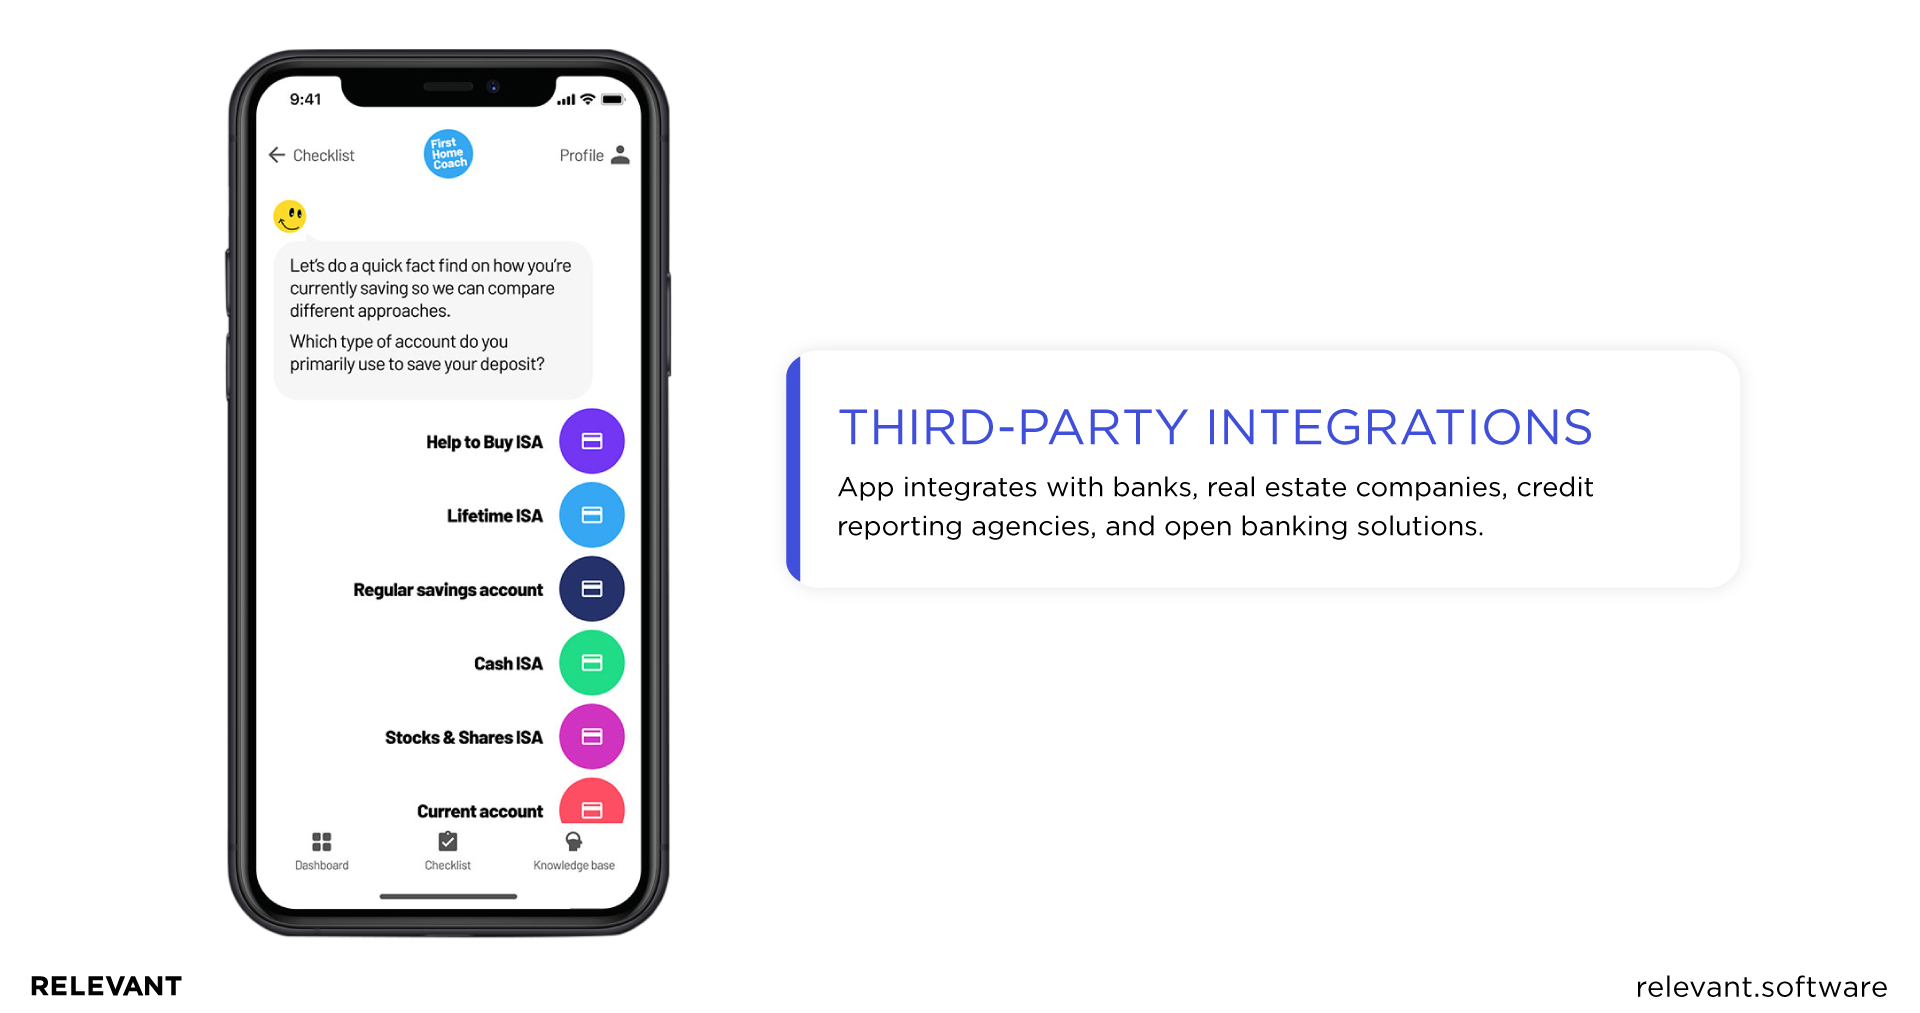 third-party integrations in mortgage apps